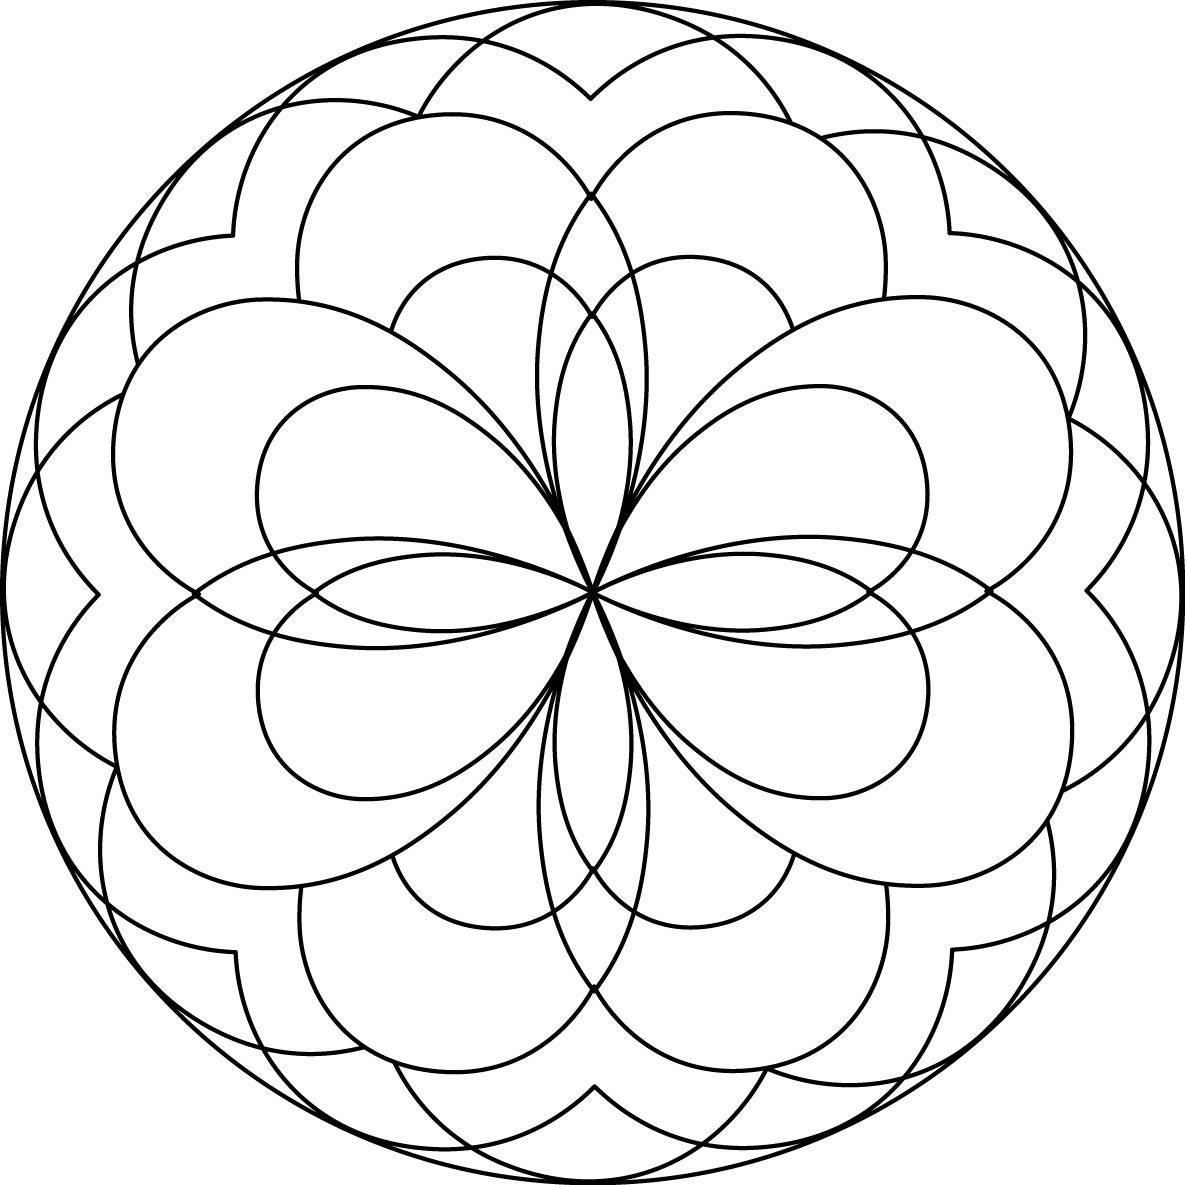 Free Mandalas Coloring Pages Kids Type